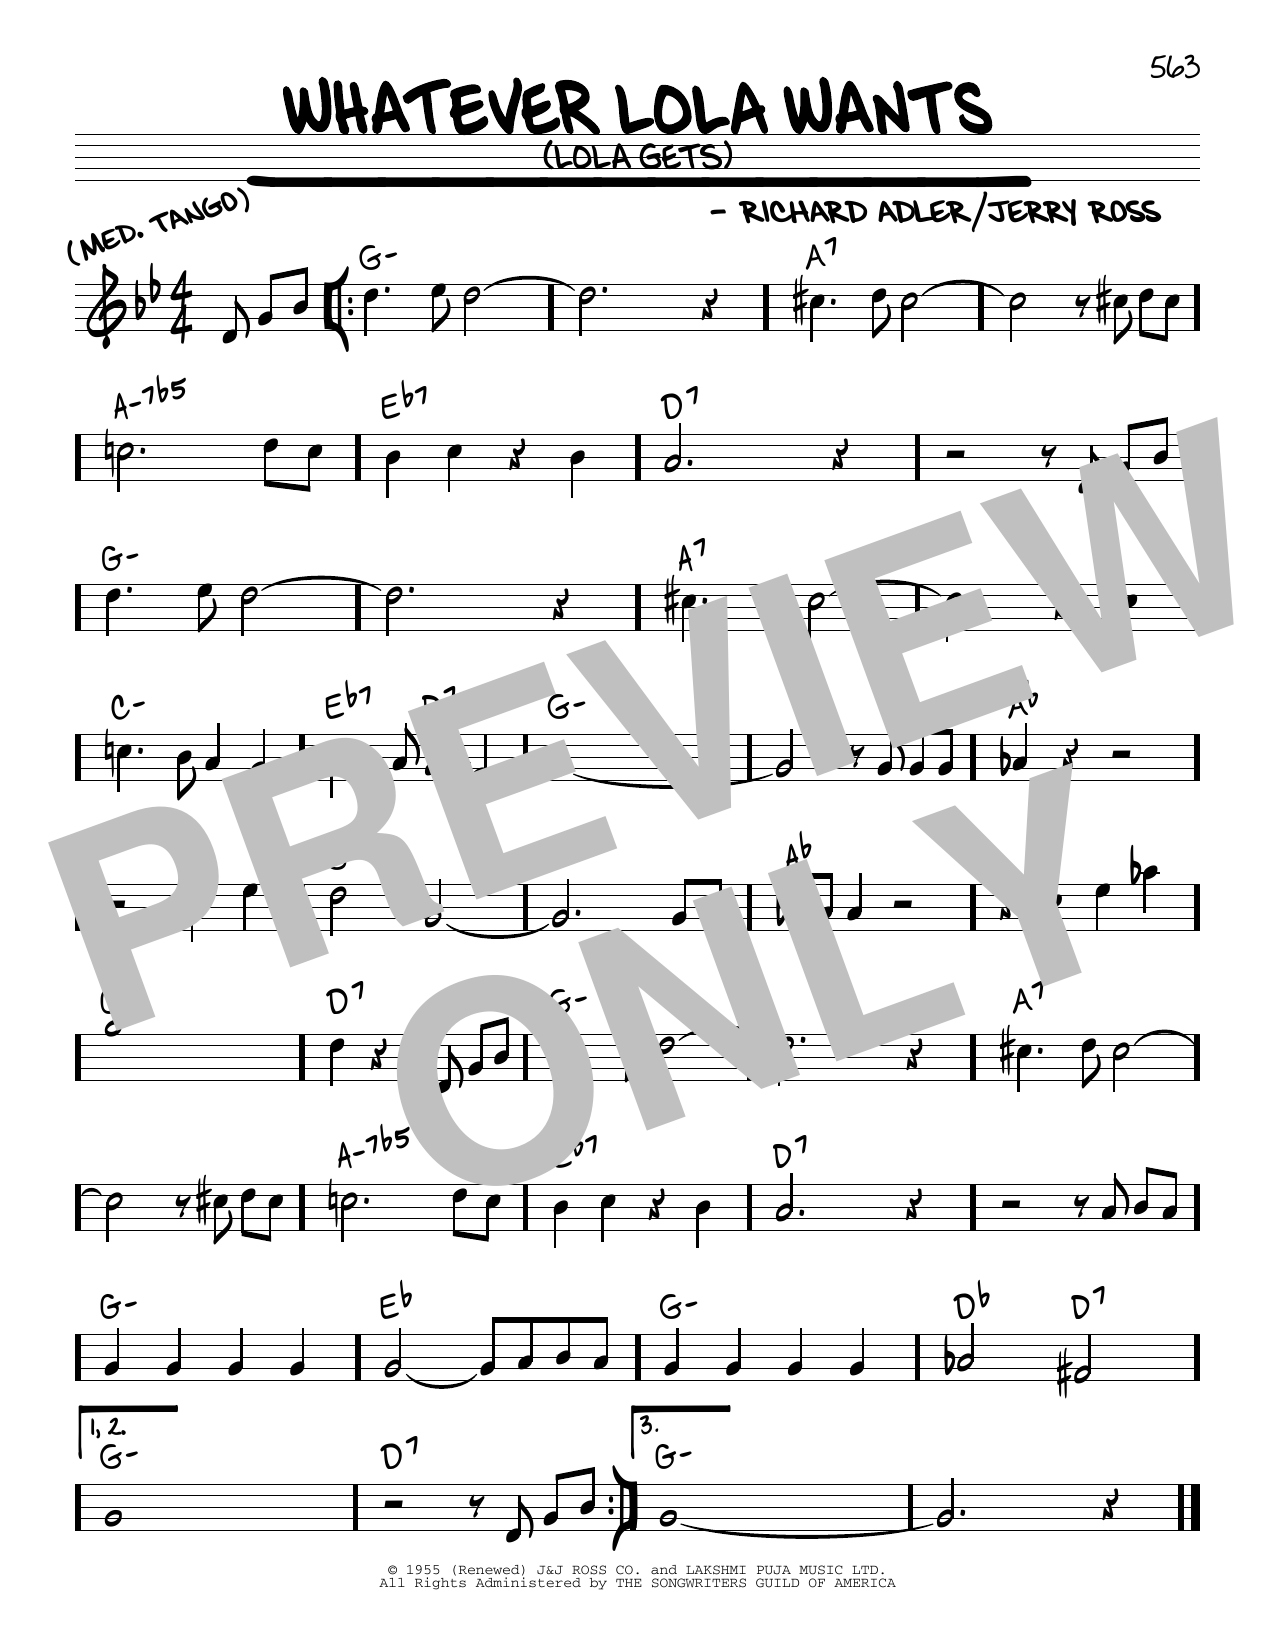 Richard Adler and Jerry Ross Whatever Lola Wants (Lola Gets) sheet music notes and chords. Download Printable PDF.